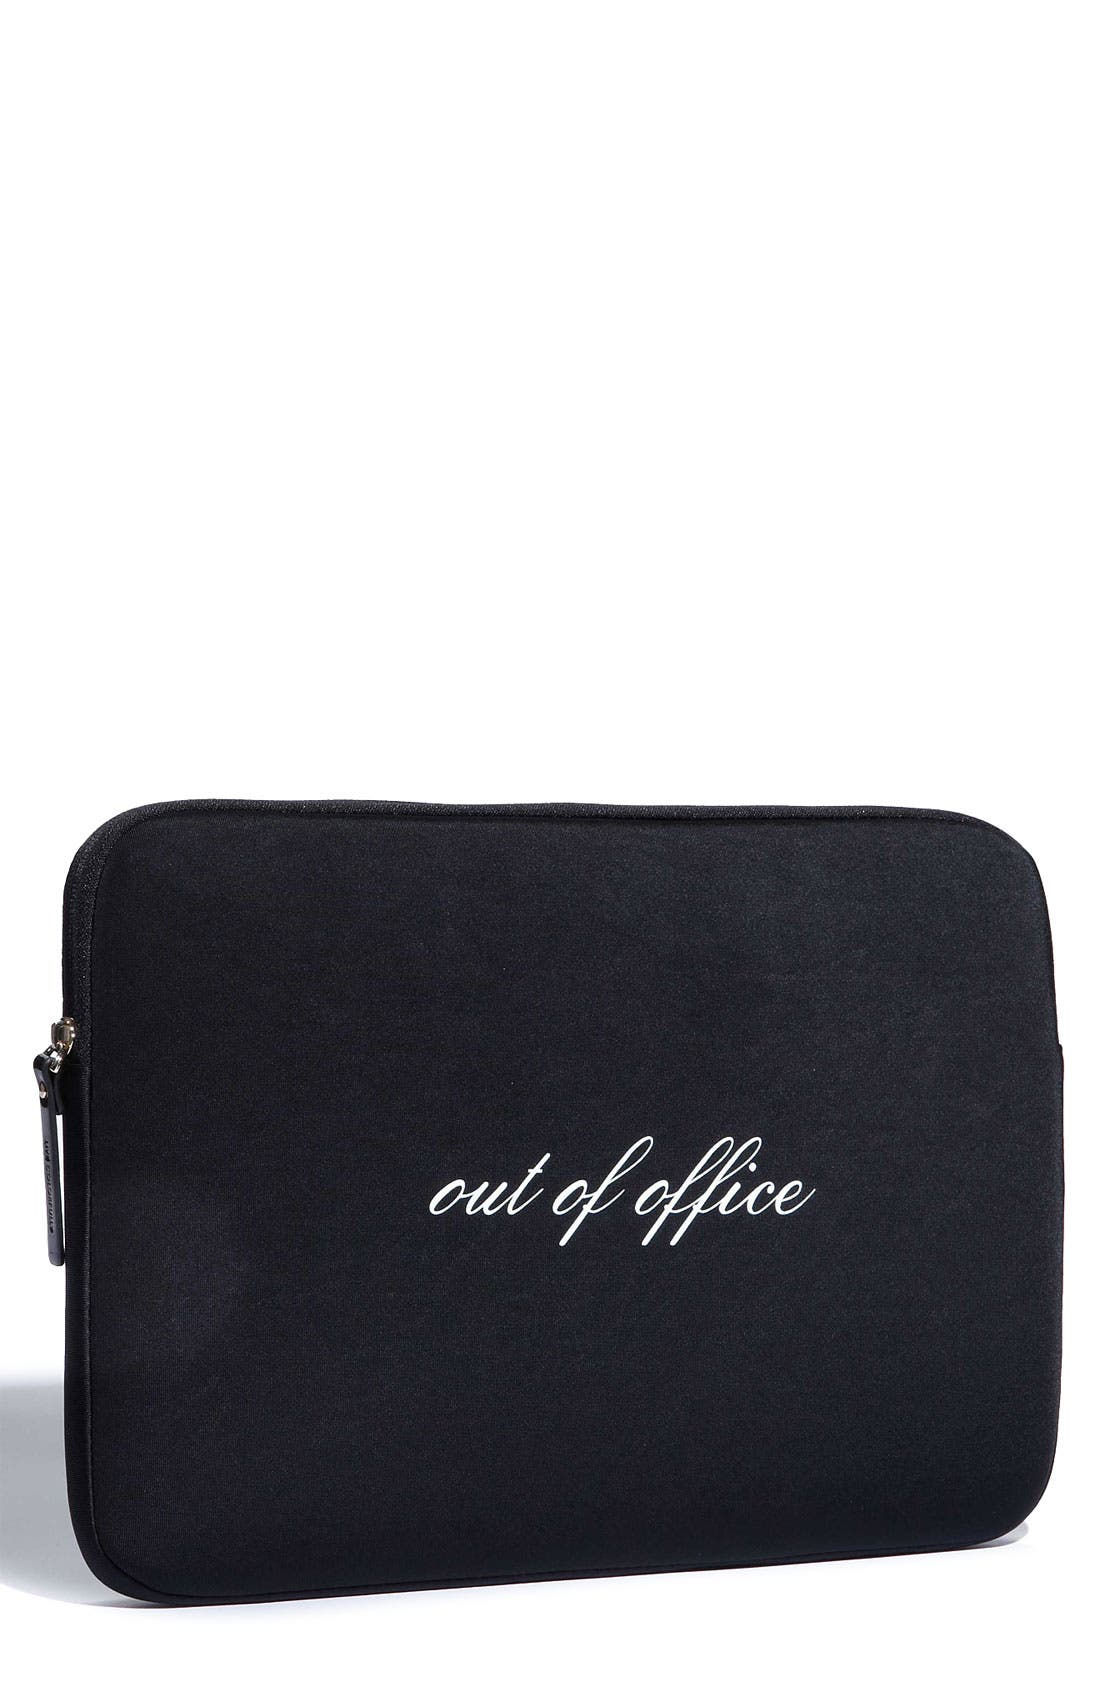 Main Image - kate spade new york 'out of office' laptop sleeve (13 Inch)